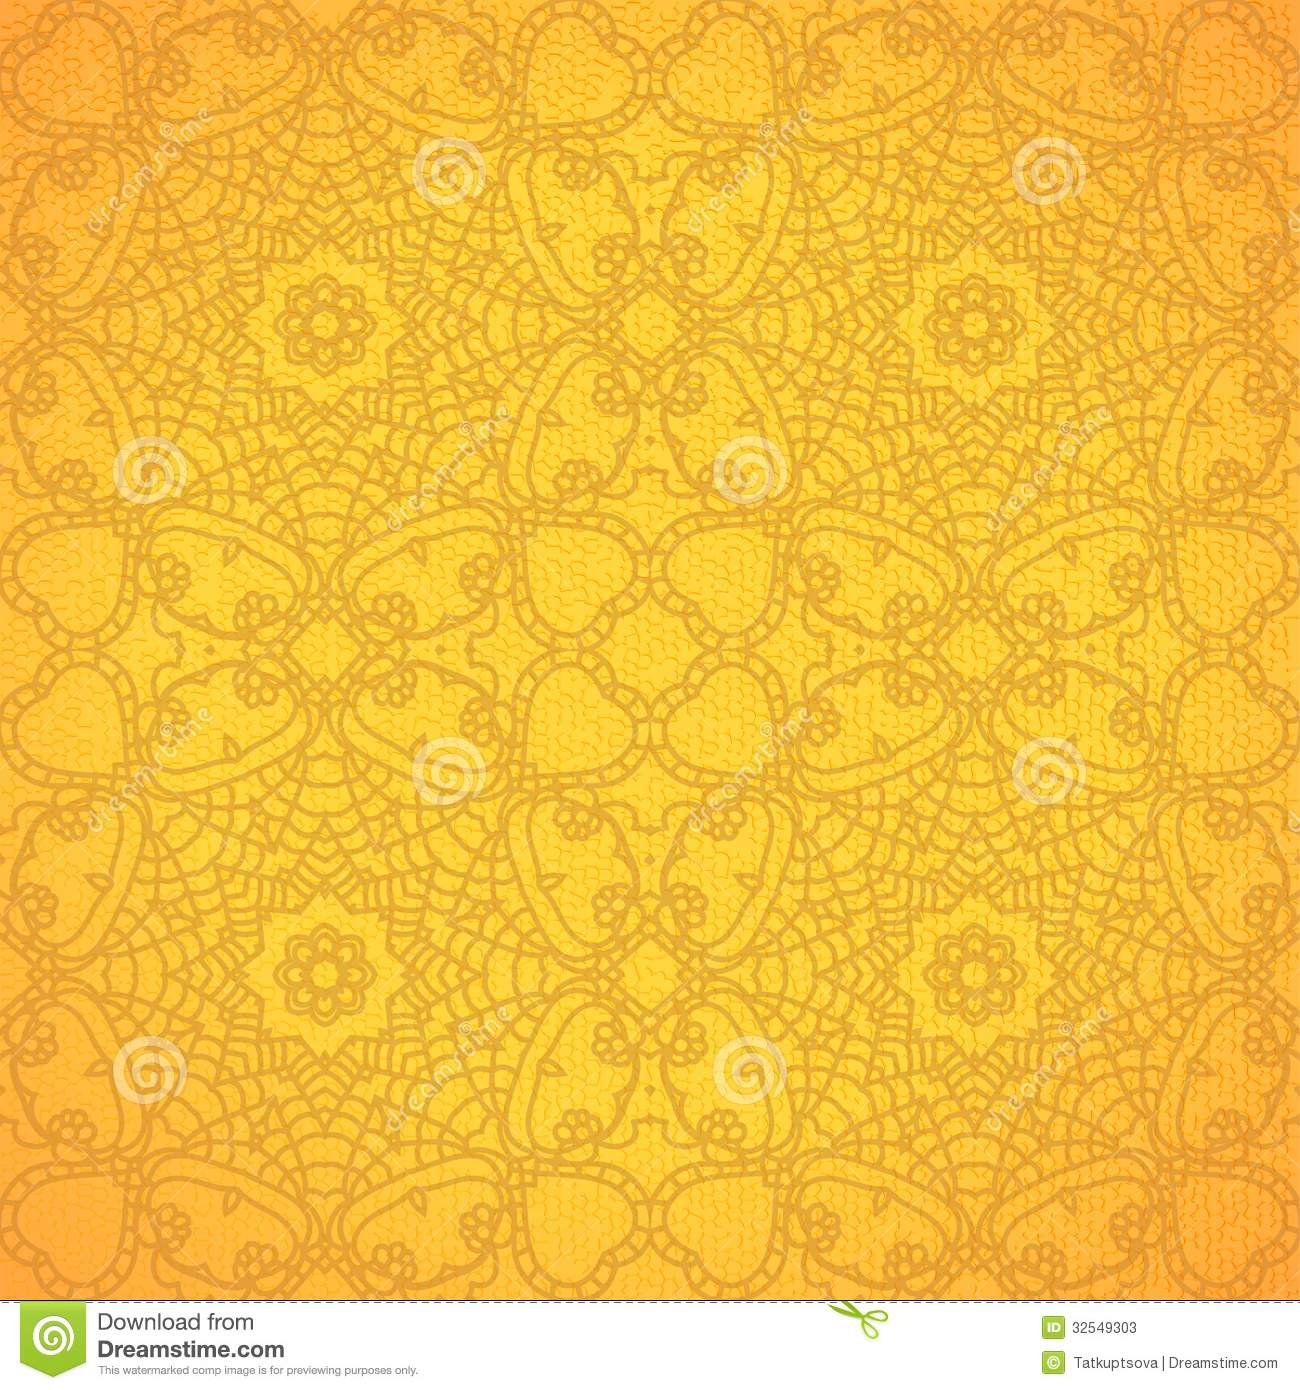 Hindu Wedding Background Design Hd